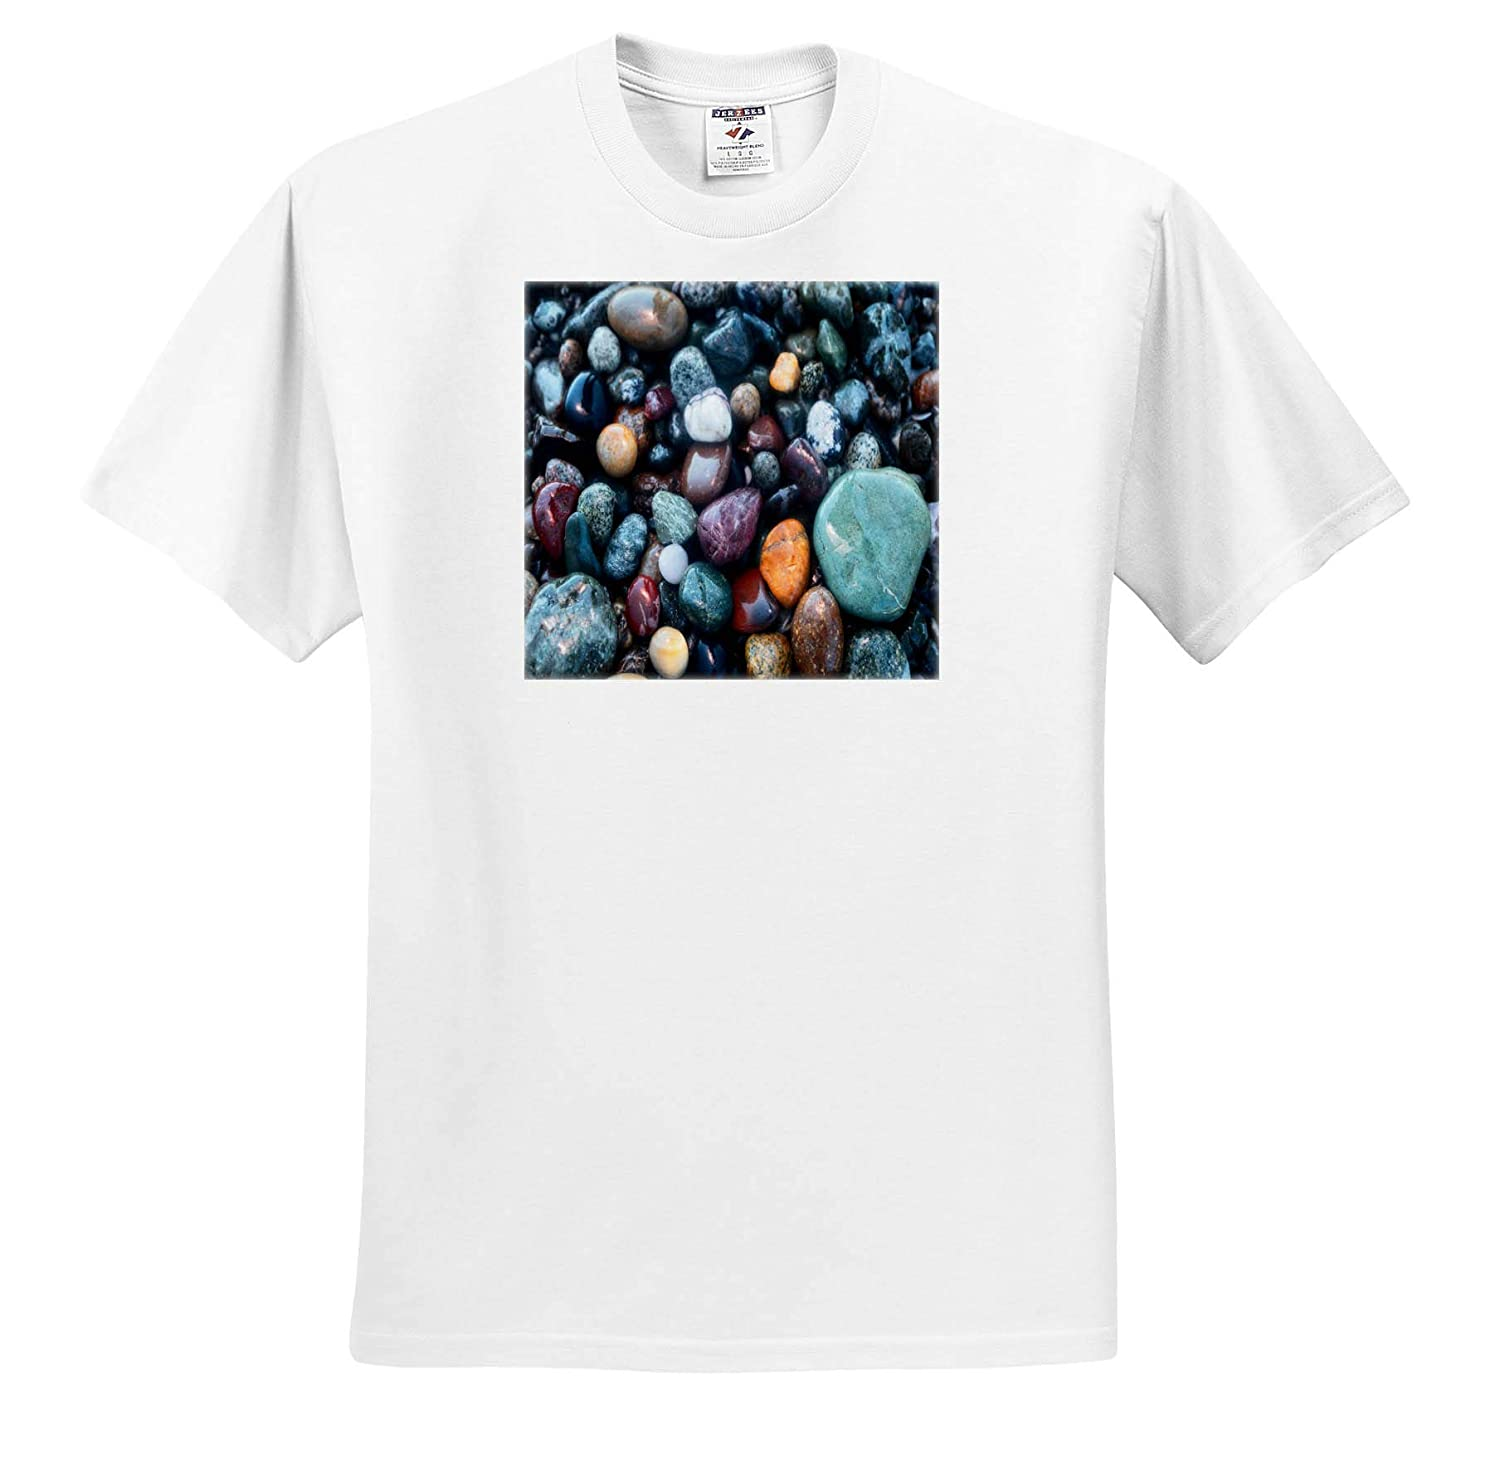 Adult T-Shirt XL 3dRose Mike Swindle Photography Landscapes ts/_309077 Multi Colored Rocks